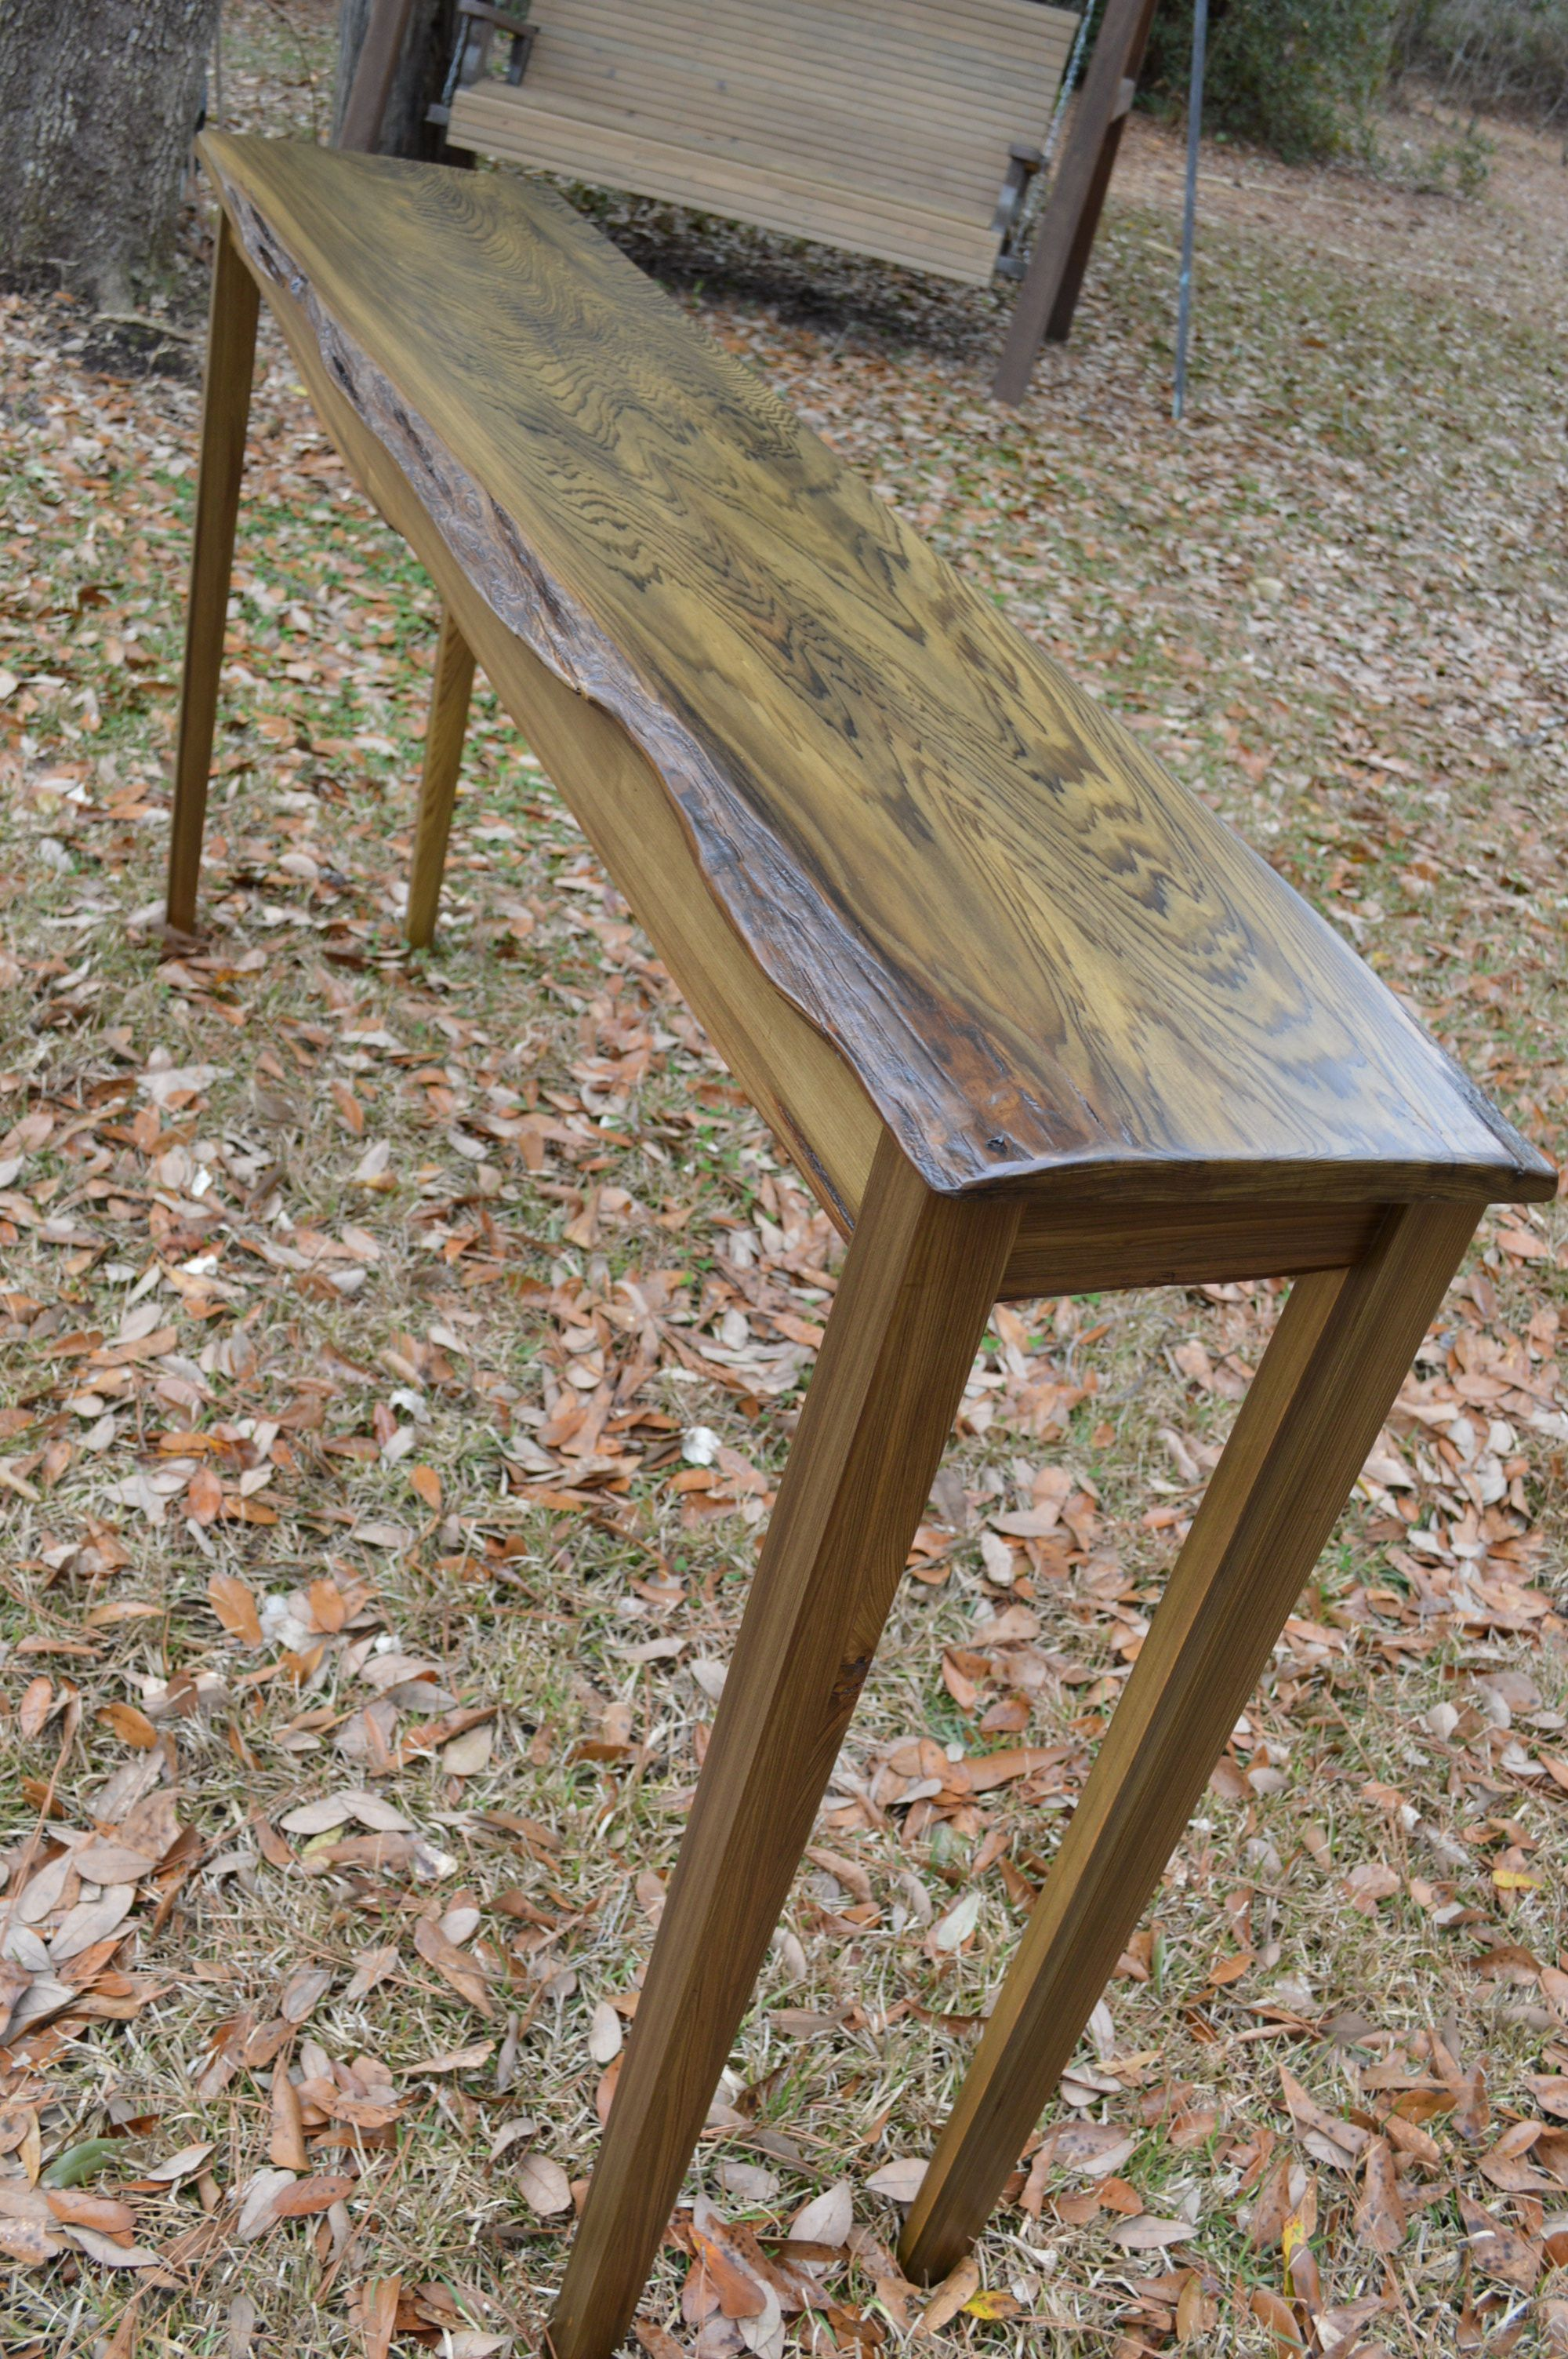 Reclaimed Sinker Cypress Console Table Contact Don Hostetler 985 237 0694 For Information Mahogany Furniture Wood Furniture Old Wood